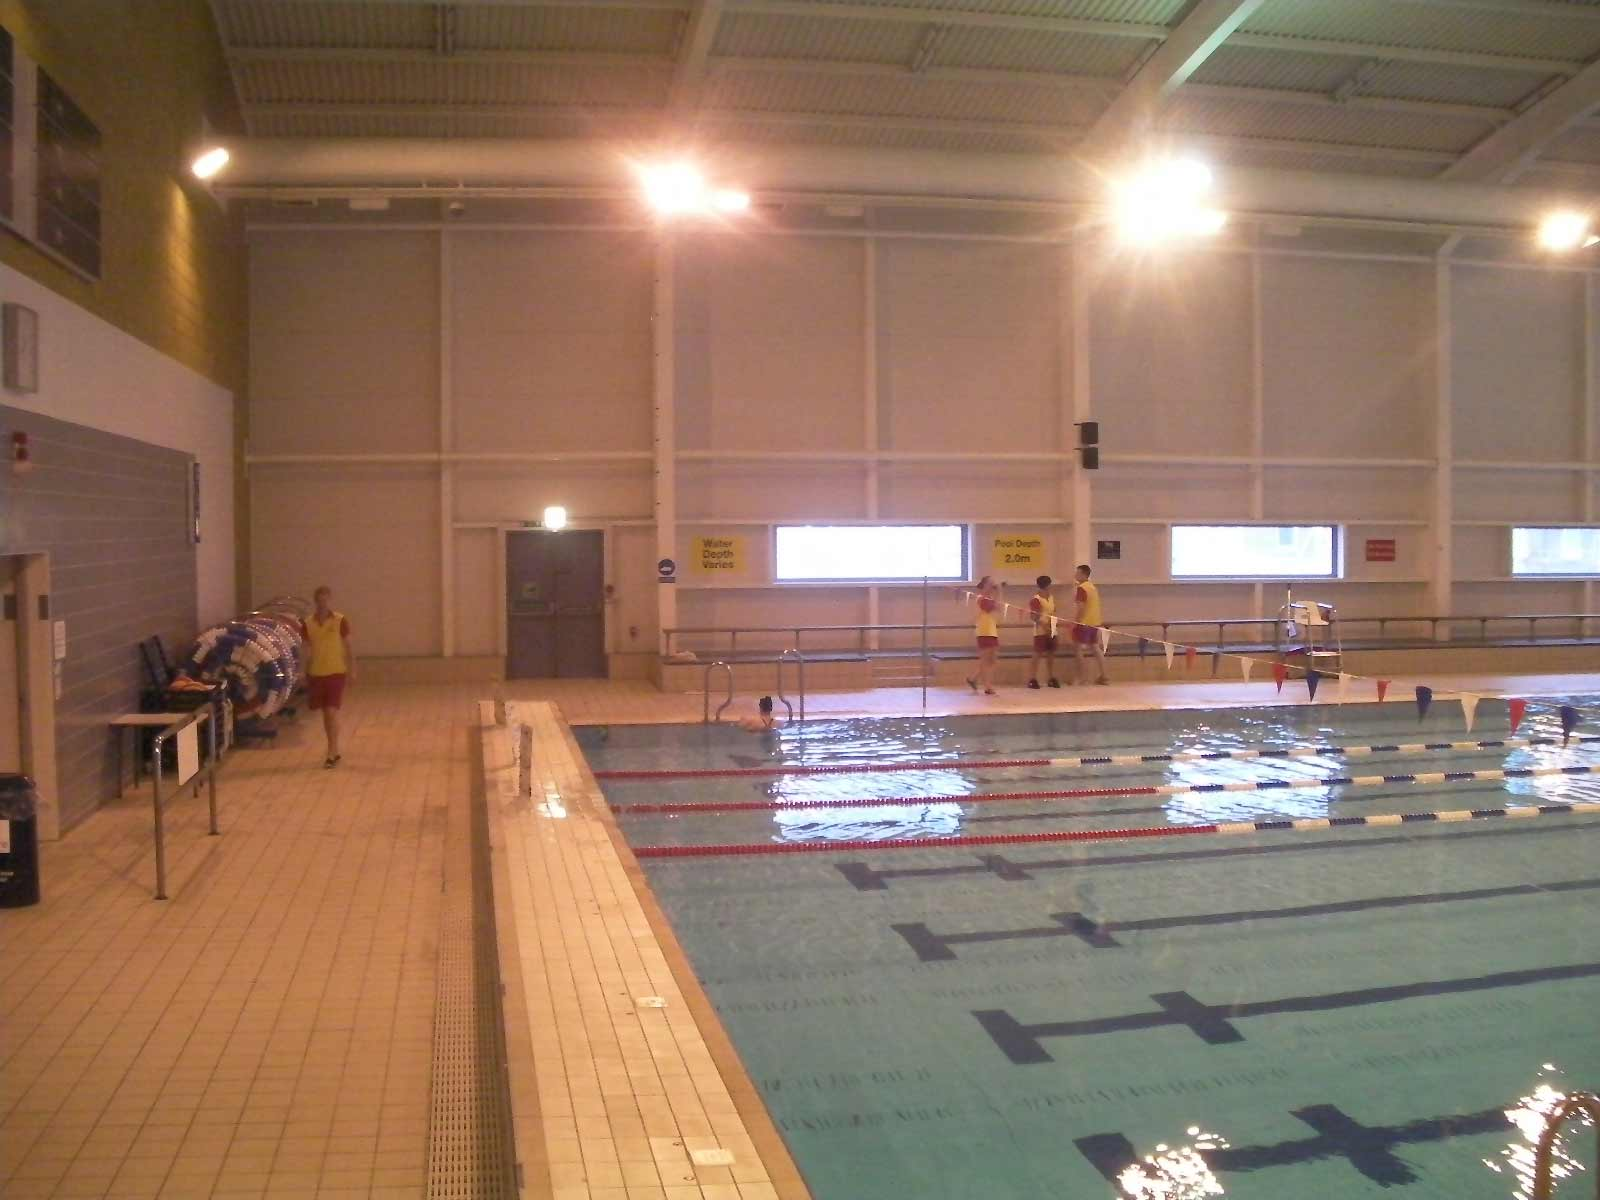 Aldershot Olympic Pool